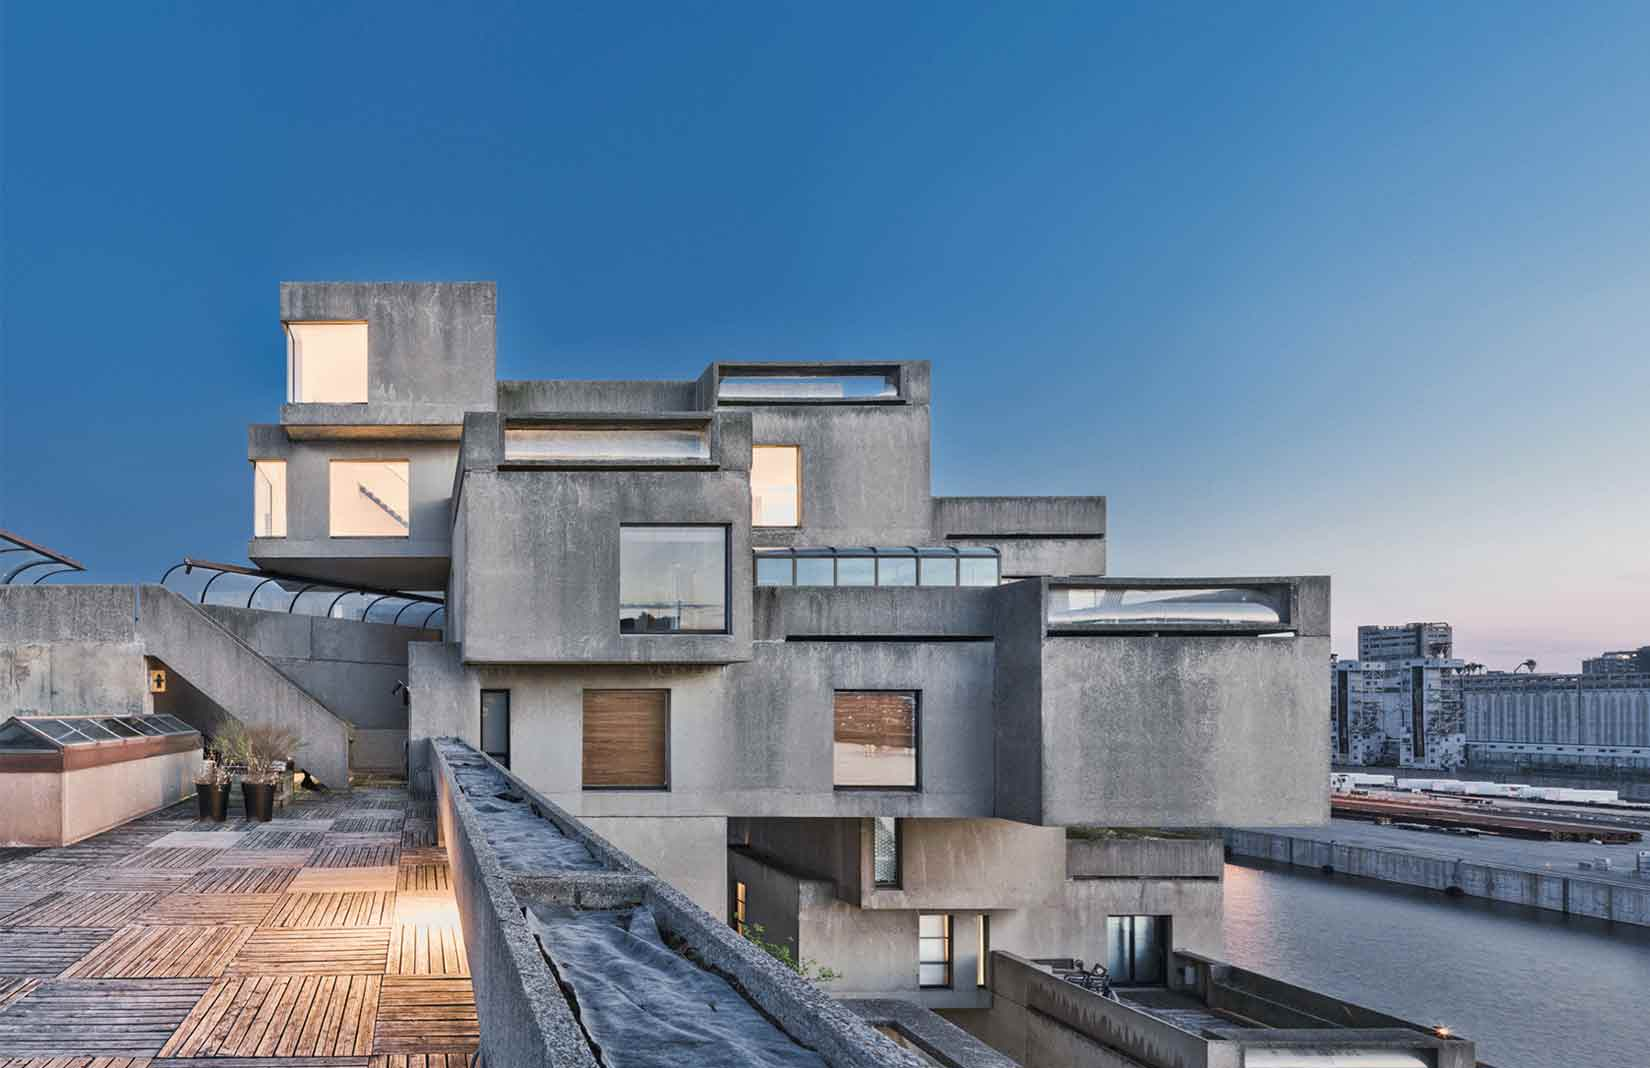 Moshe Sadfie's Habitat 67 is now open to the public for tours